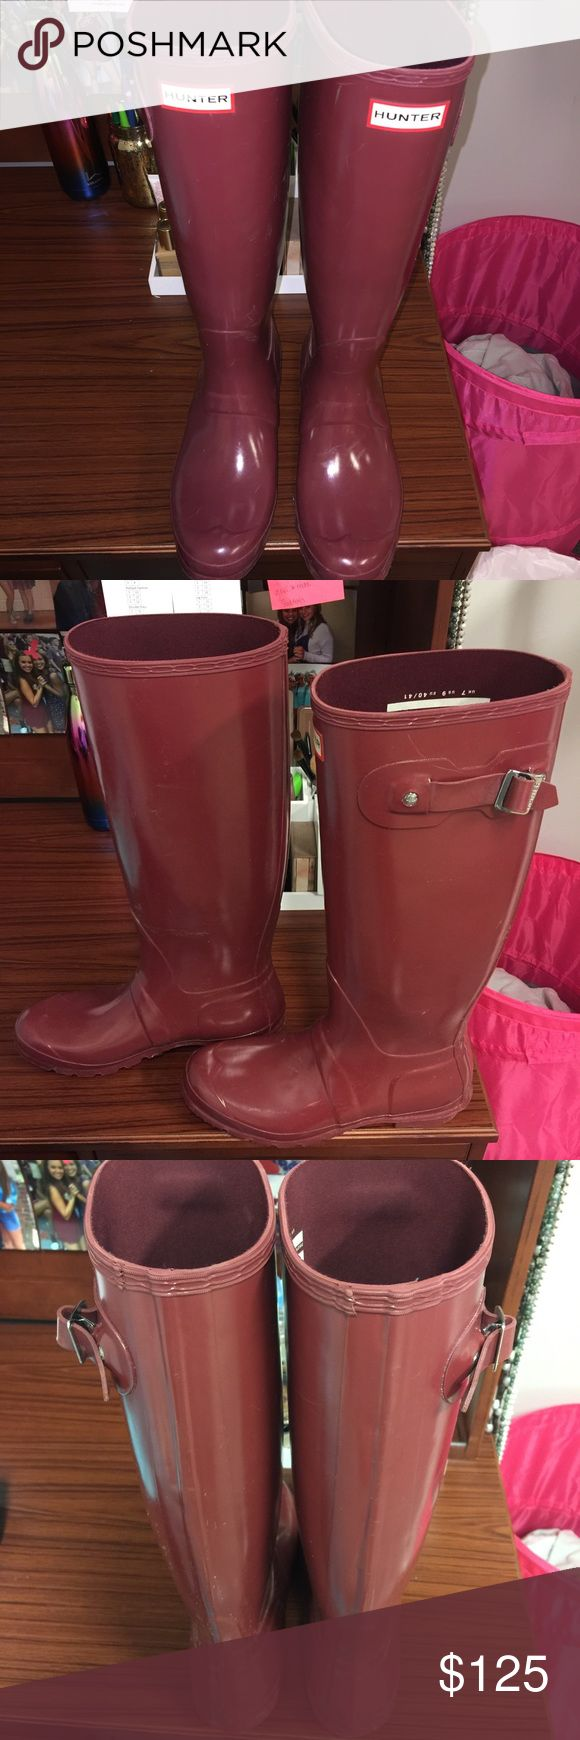 Maroon tall hunter rain boots Slightly worn. Hunter original brand. Tall boots. Price firm. Will clean up to ship. Hunter Boots Shoes Winter & Rain Boots